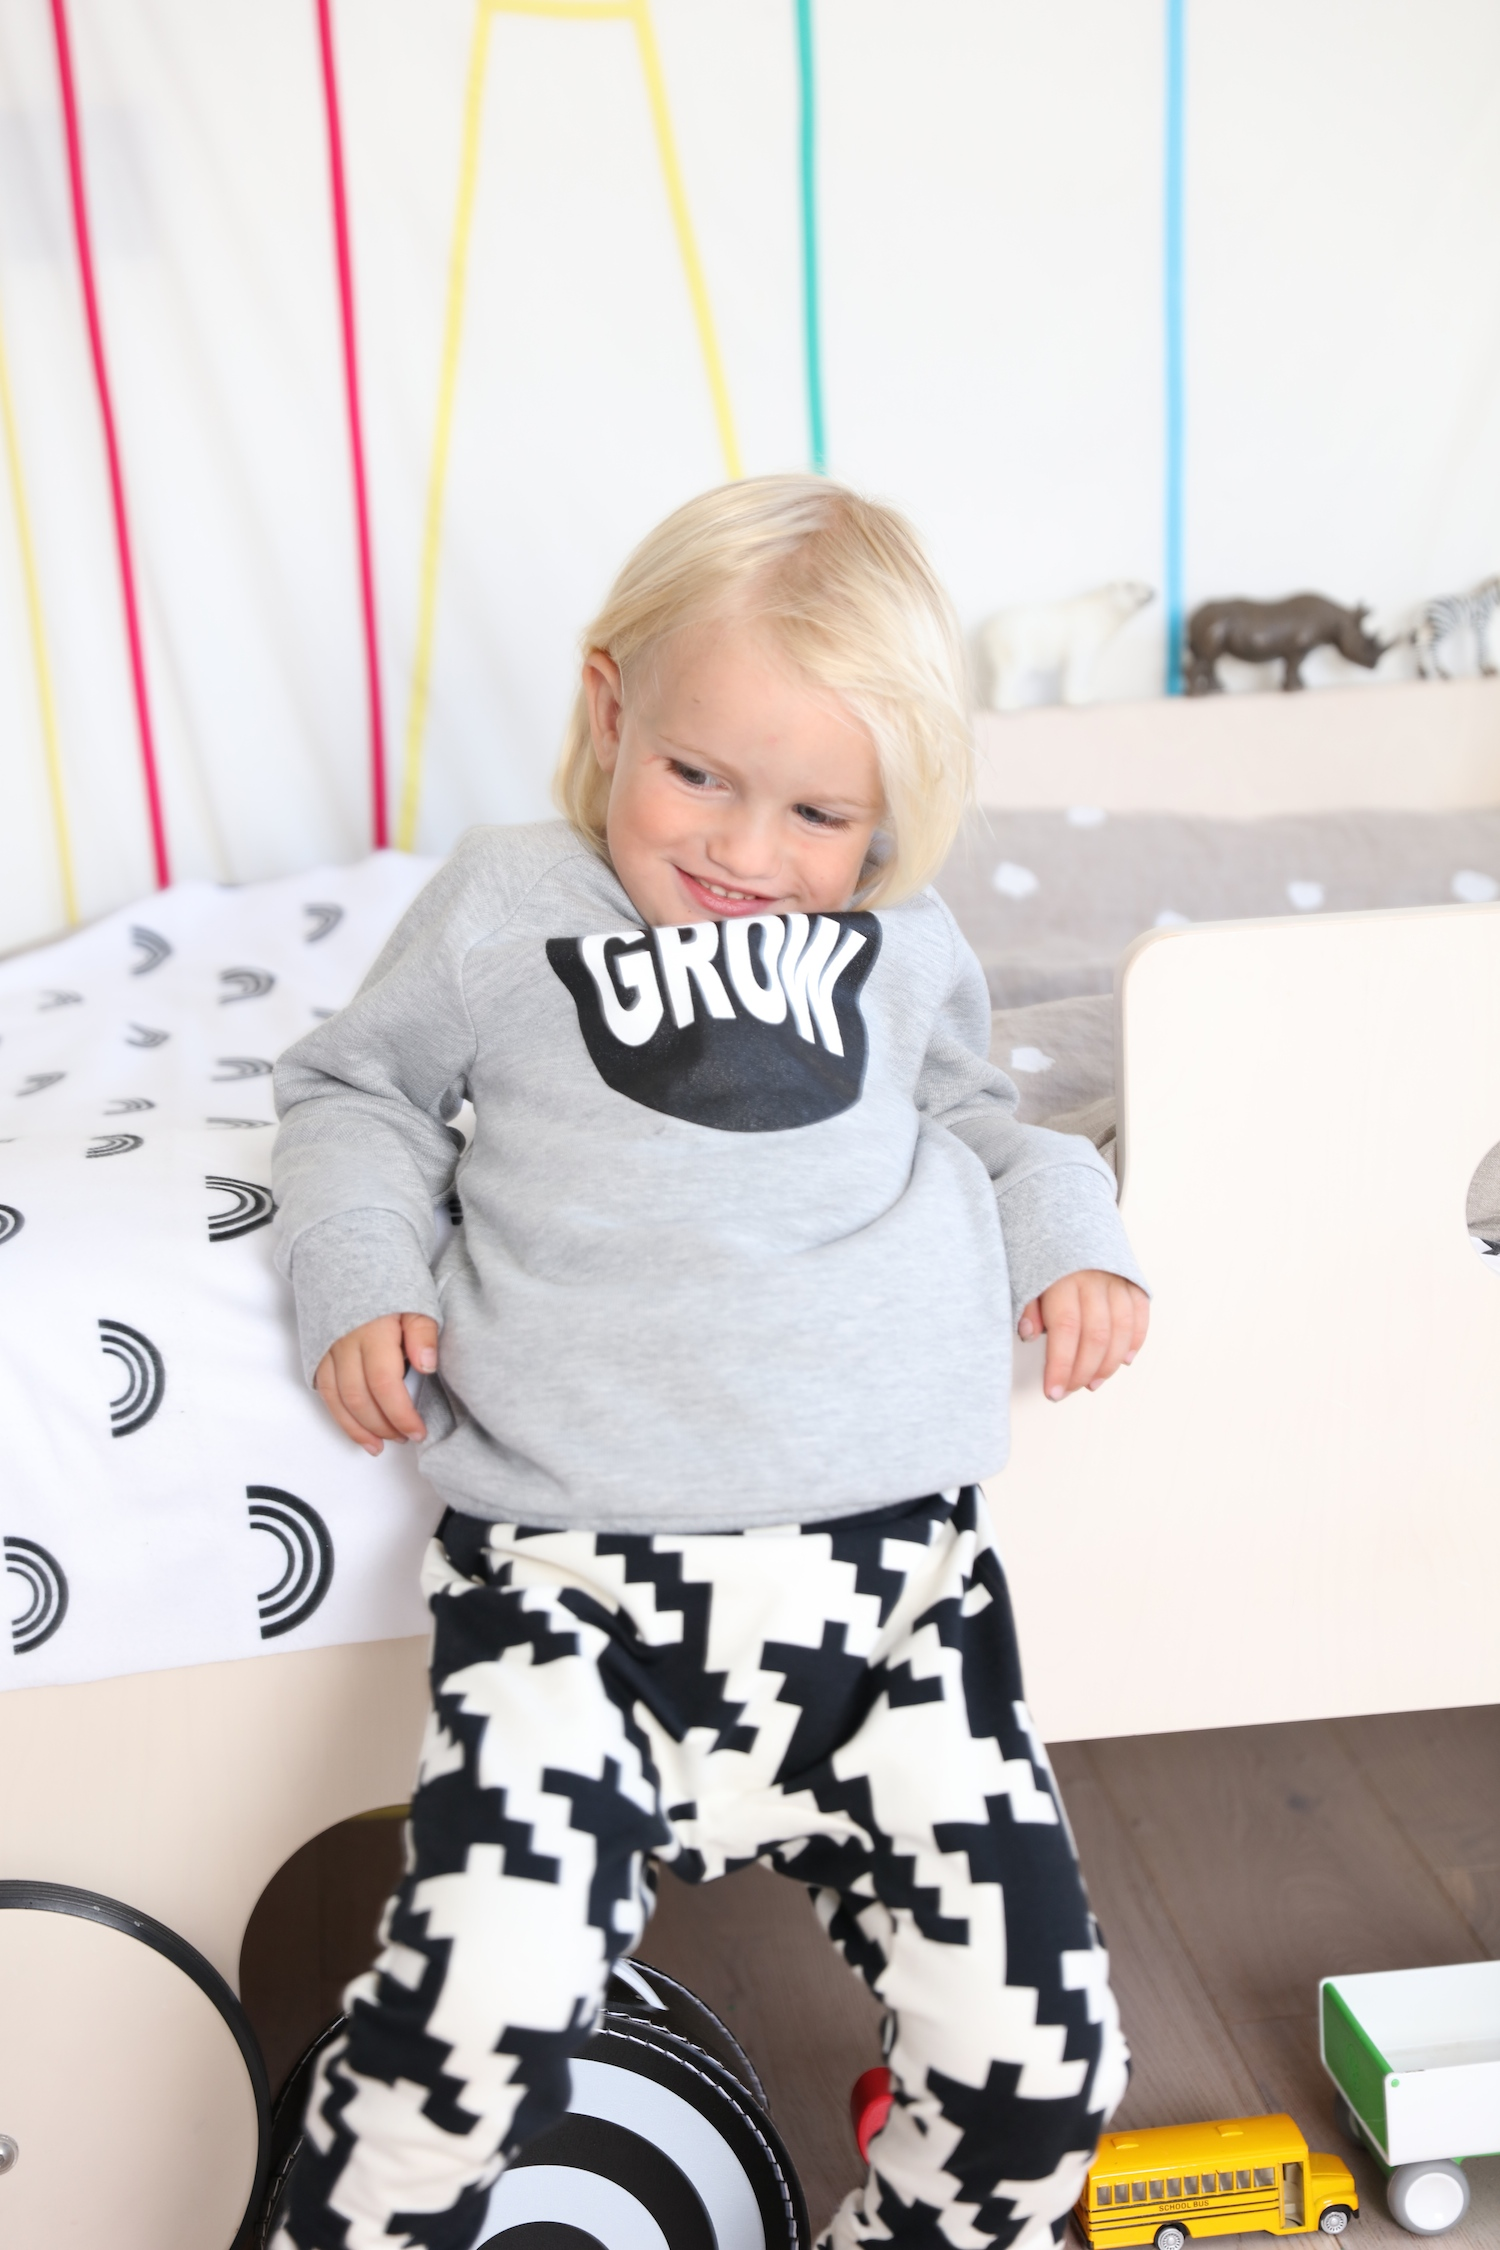 Little_man_happy_grow_trousers_aw16_kids_clothes